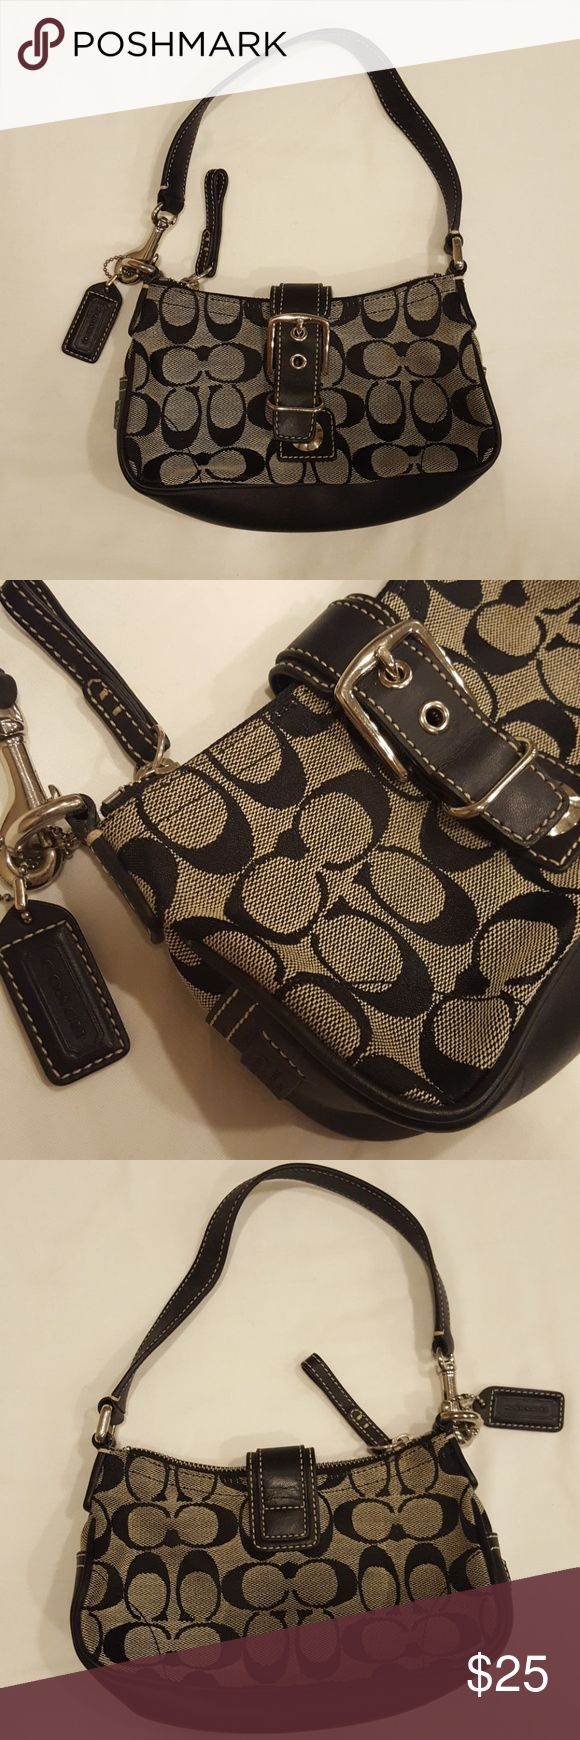 Small Black Coach Purse Small Black Coach Shoulder Bag. With Buckle Detail. Small Pocket Inside Coach Bags Shoulder Bags